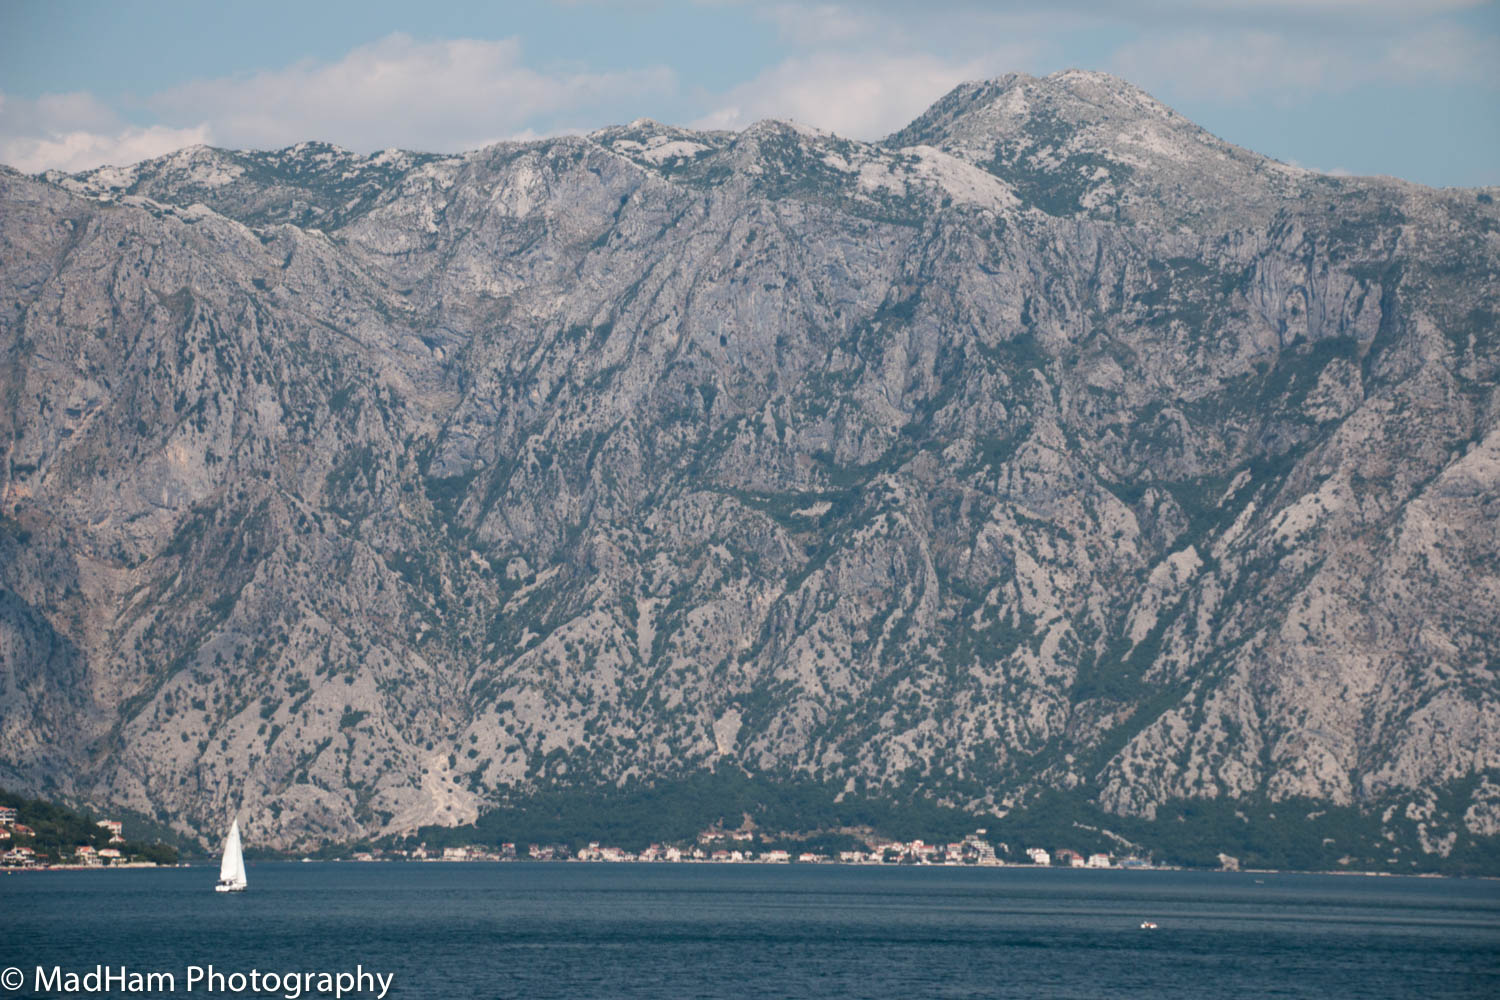 Bay of Kotor No. 1